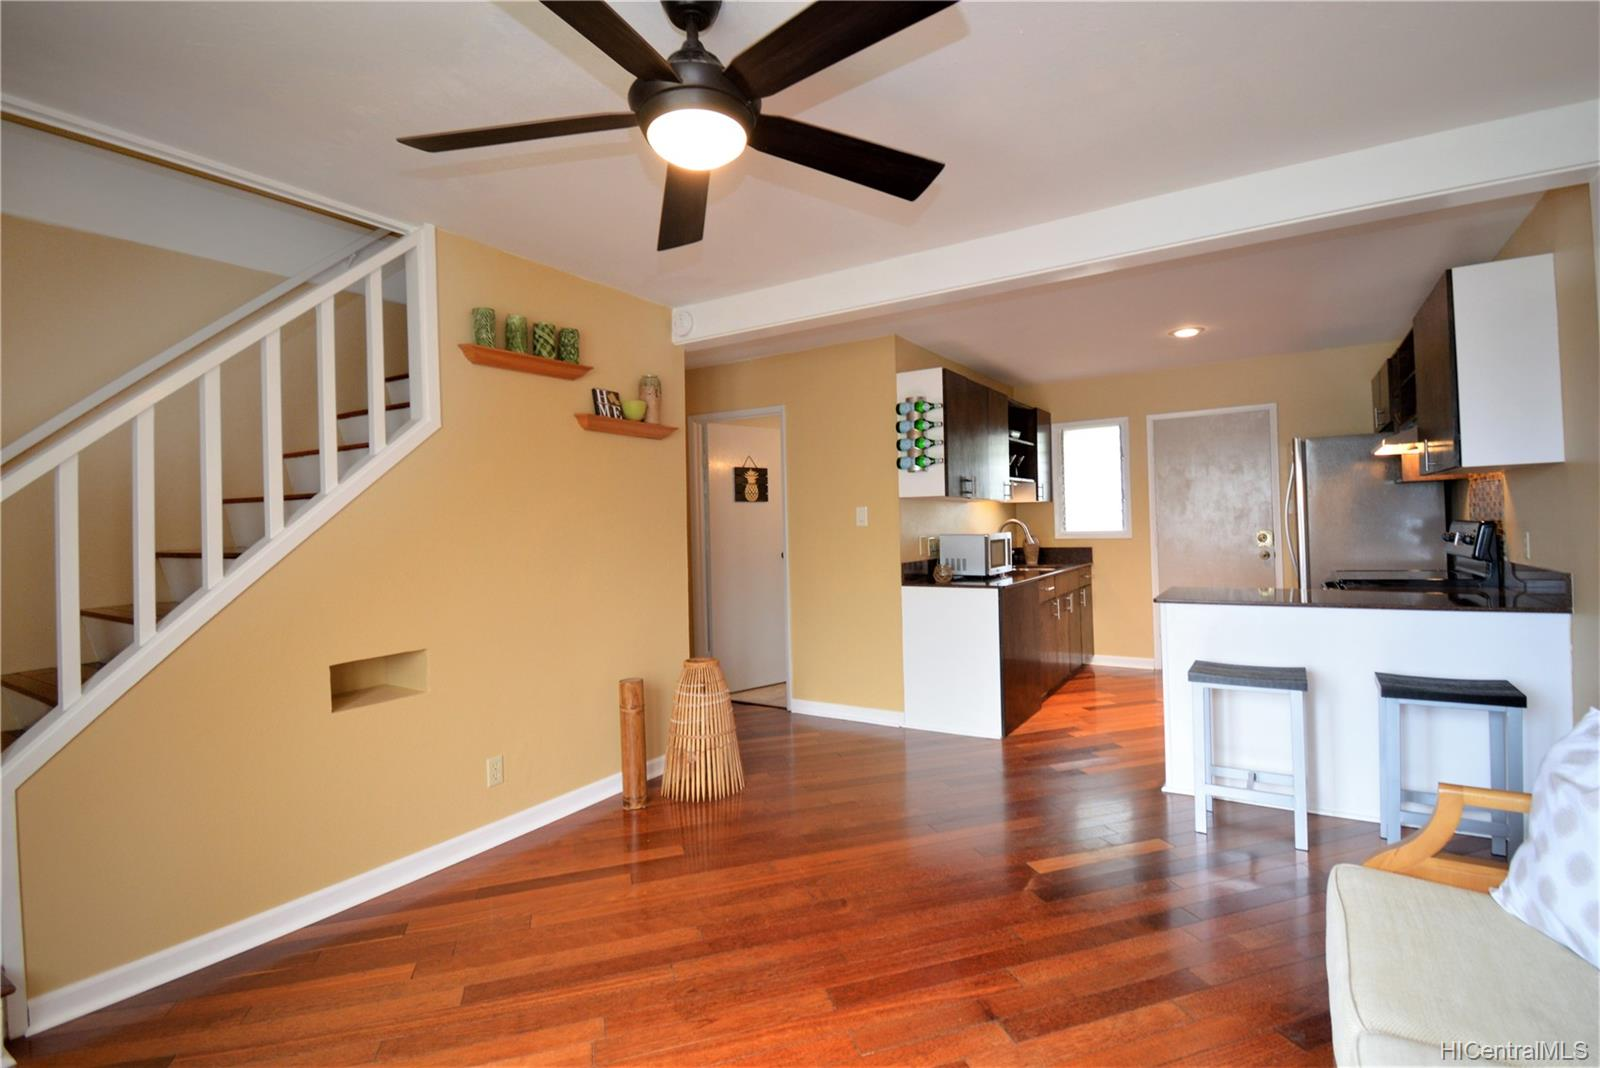 98-1397 Hinu Place townhouse # D, Pearl City, Hawaii - photo 2 of 25